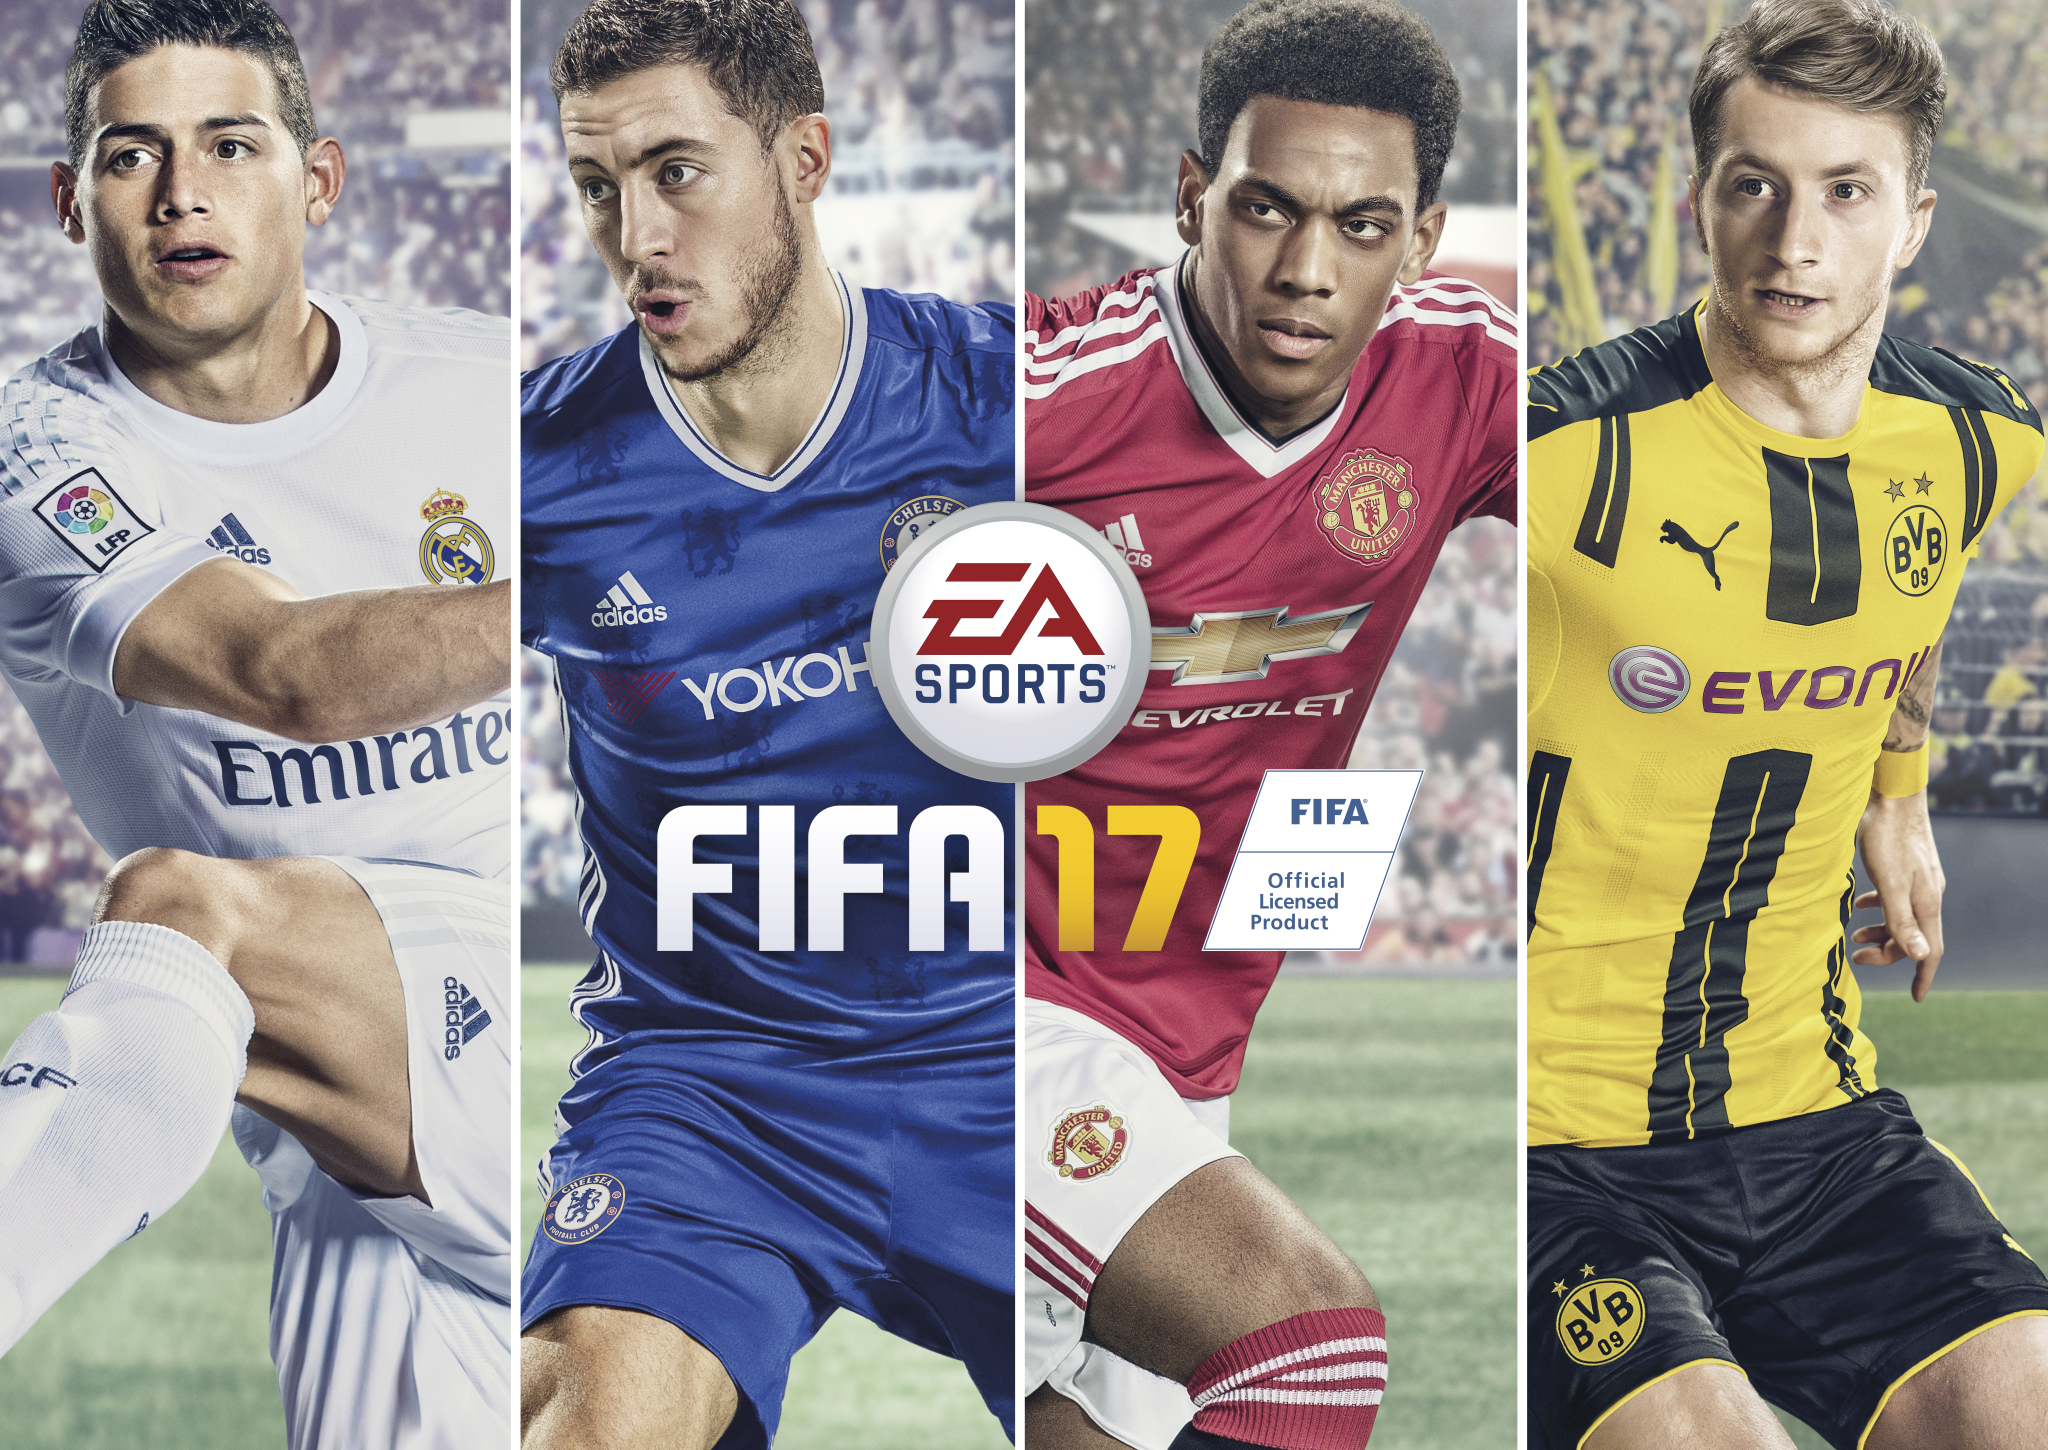 fifa17_powered_by_frostbite_1